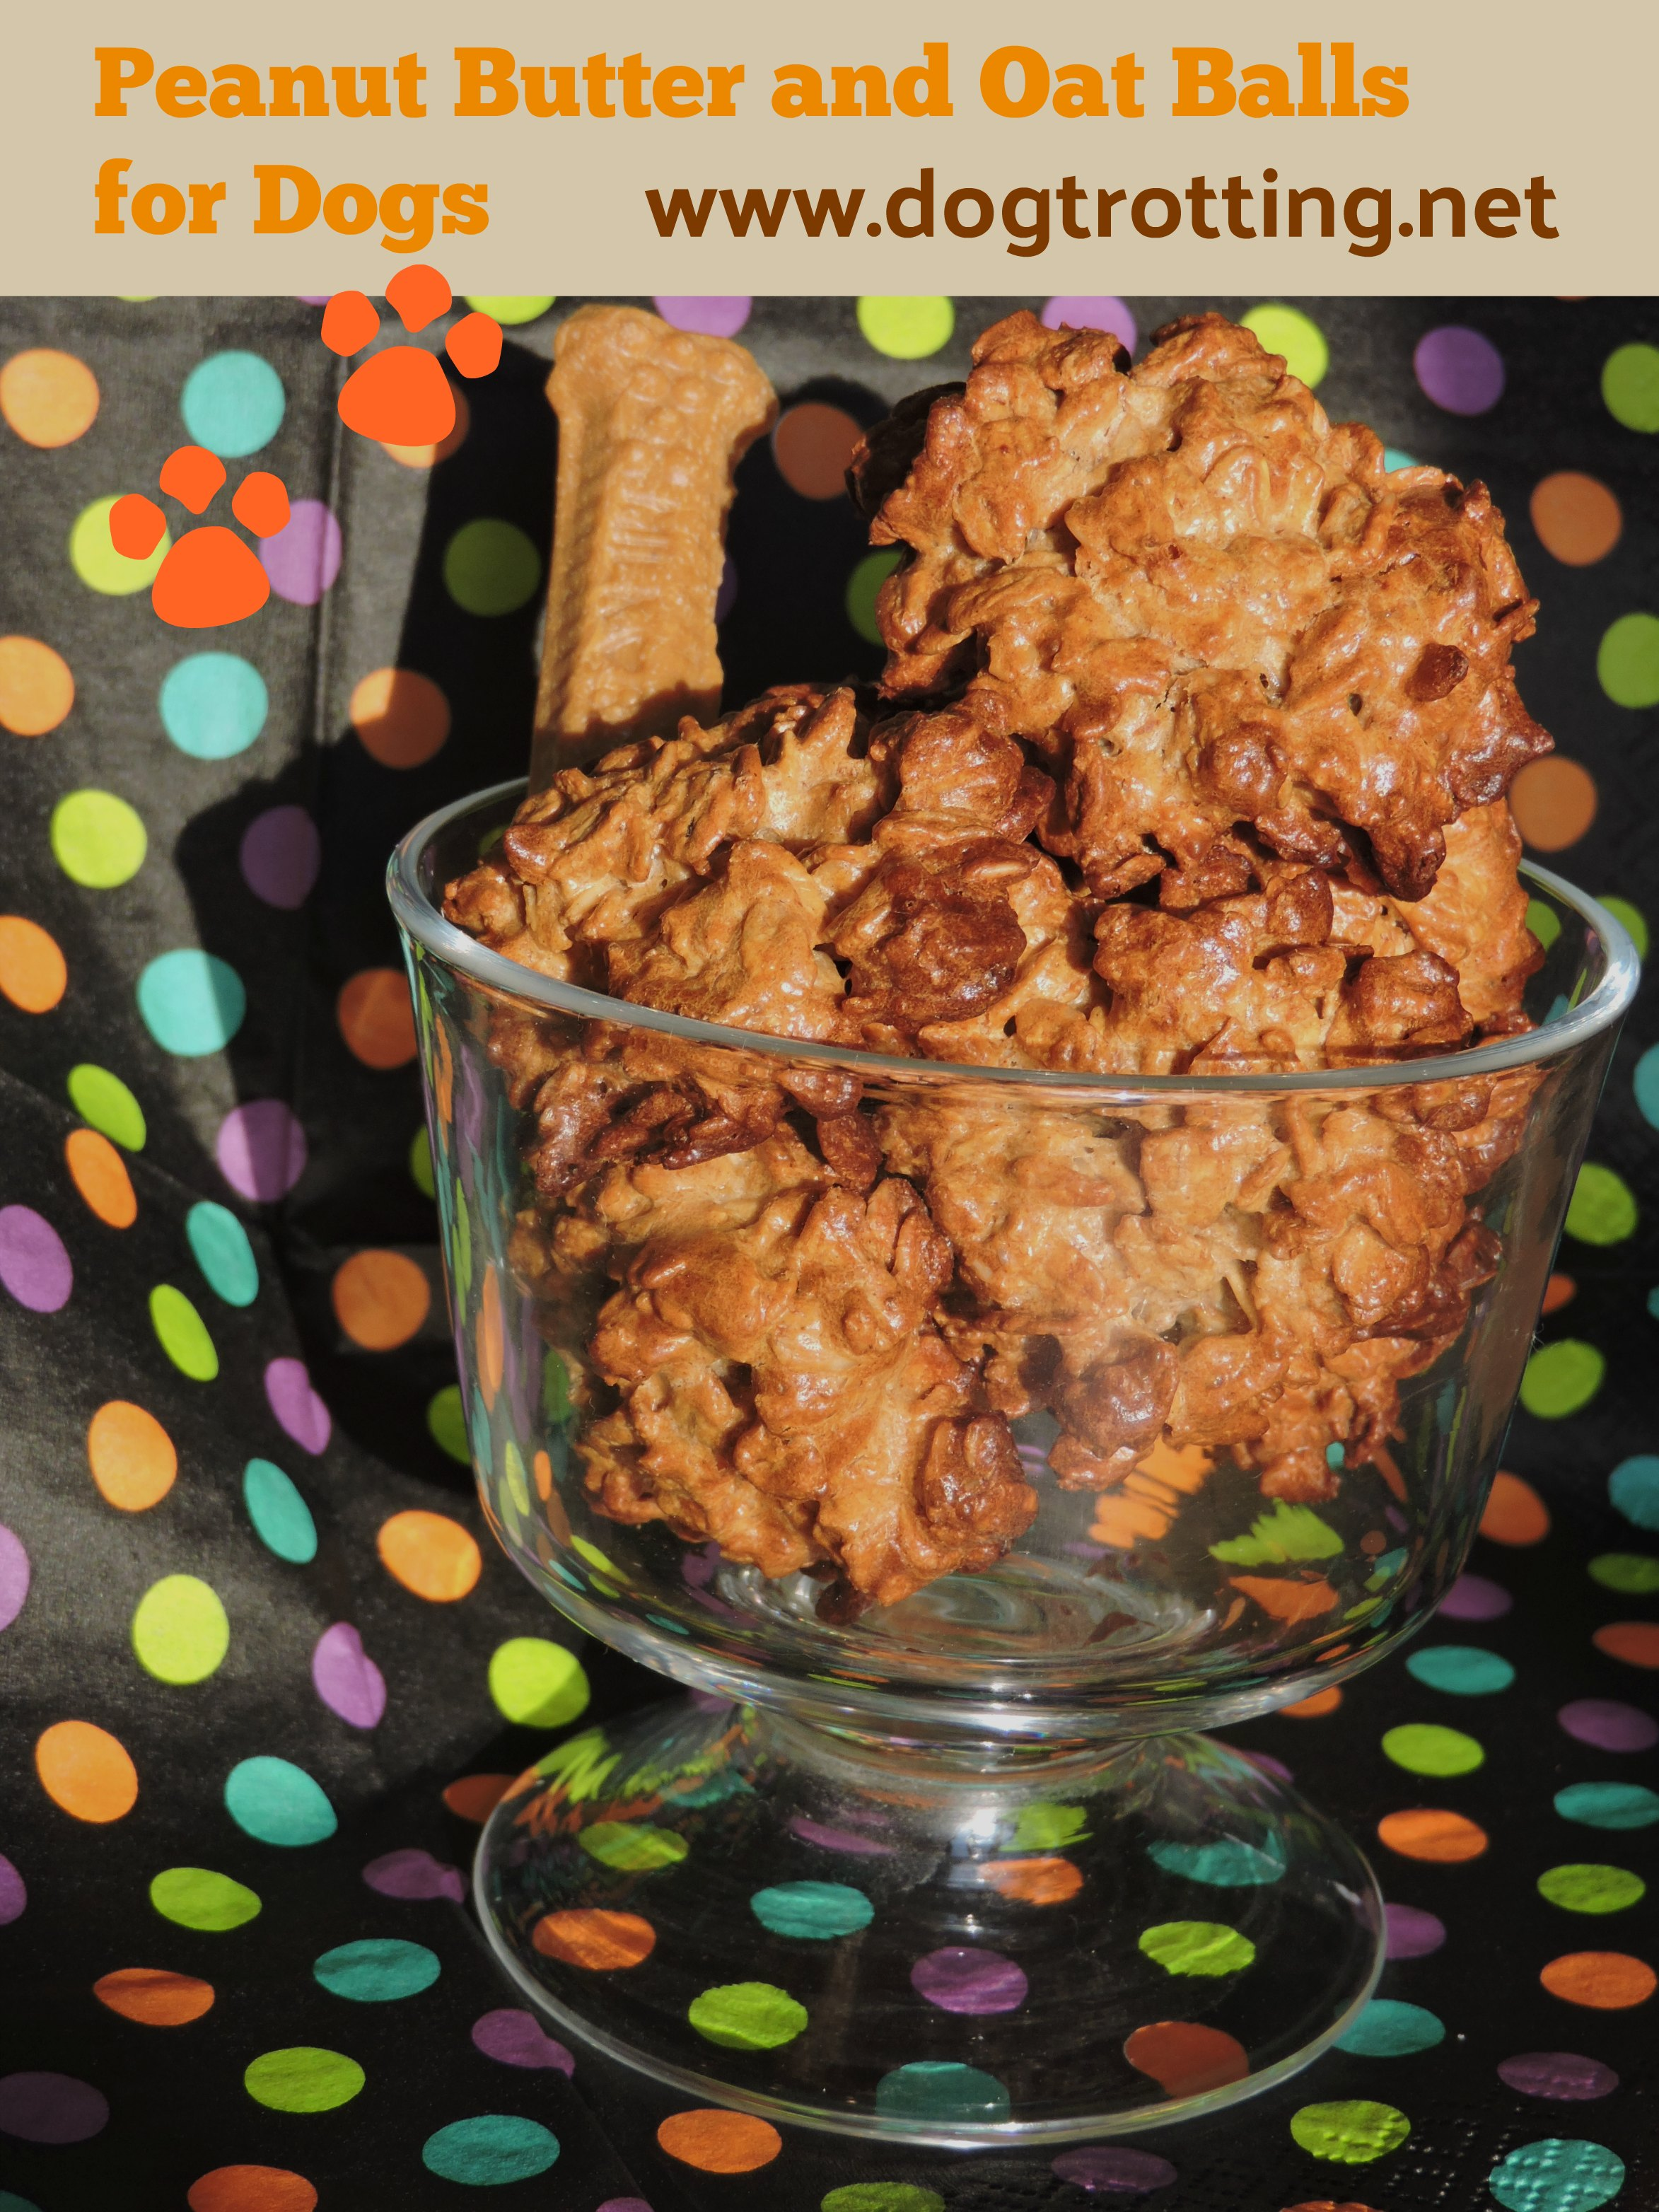 peanut butter and oat balls for dogs recipe